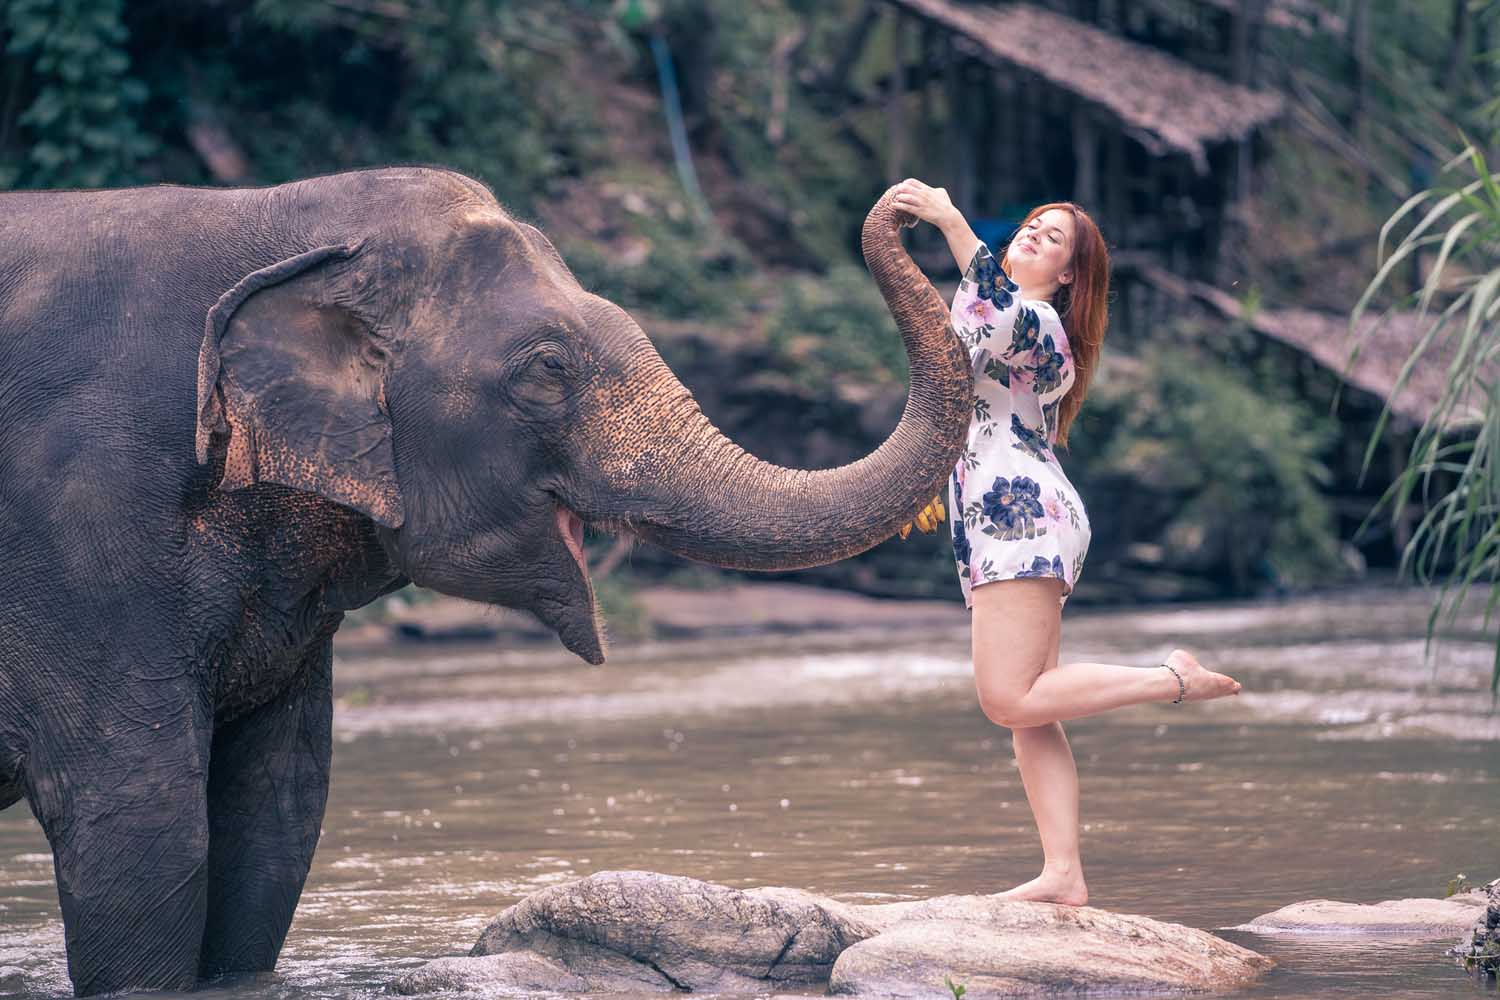 Have your picture taken with elephants